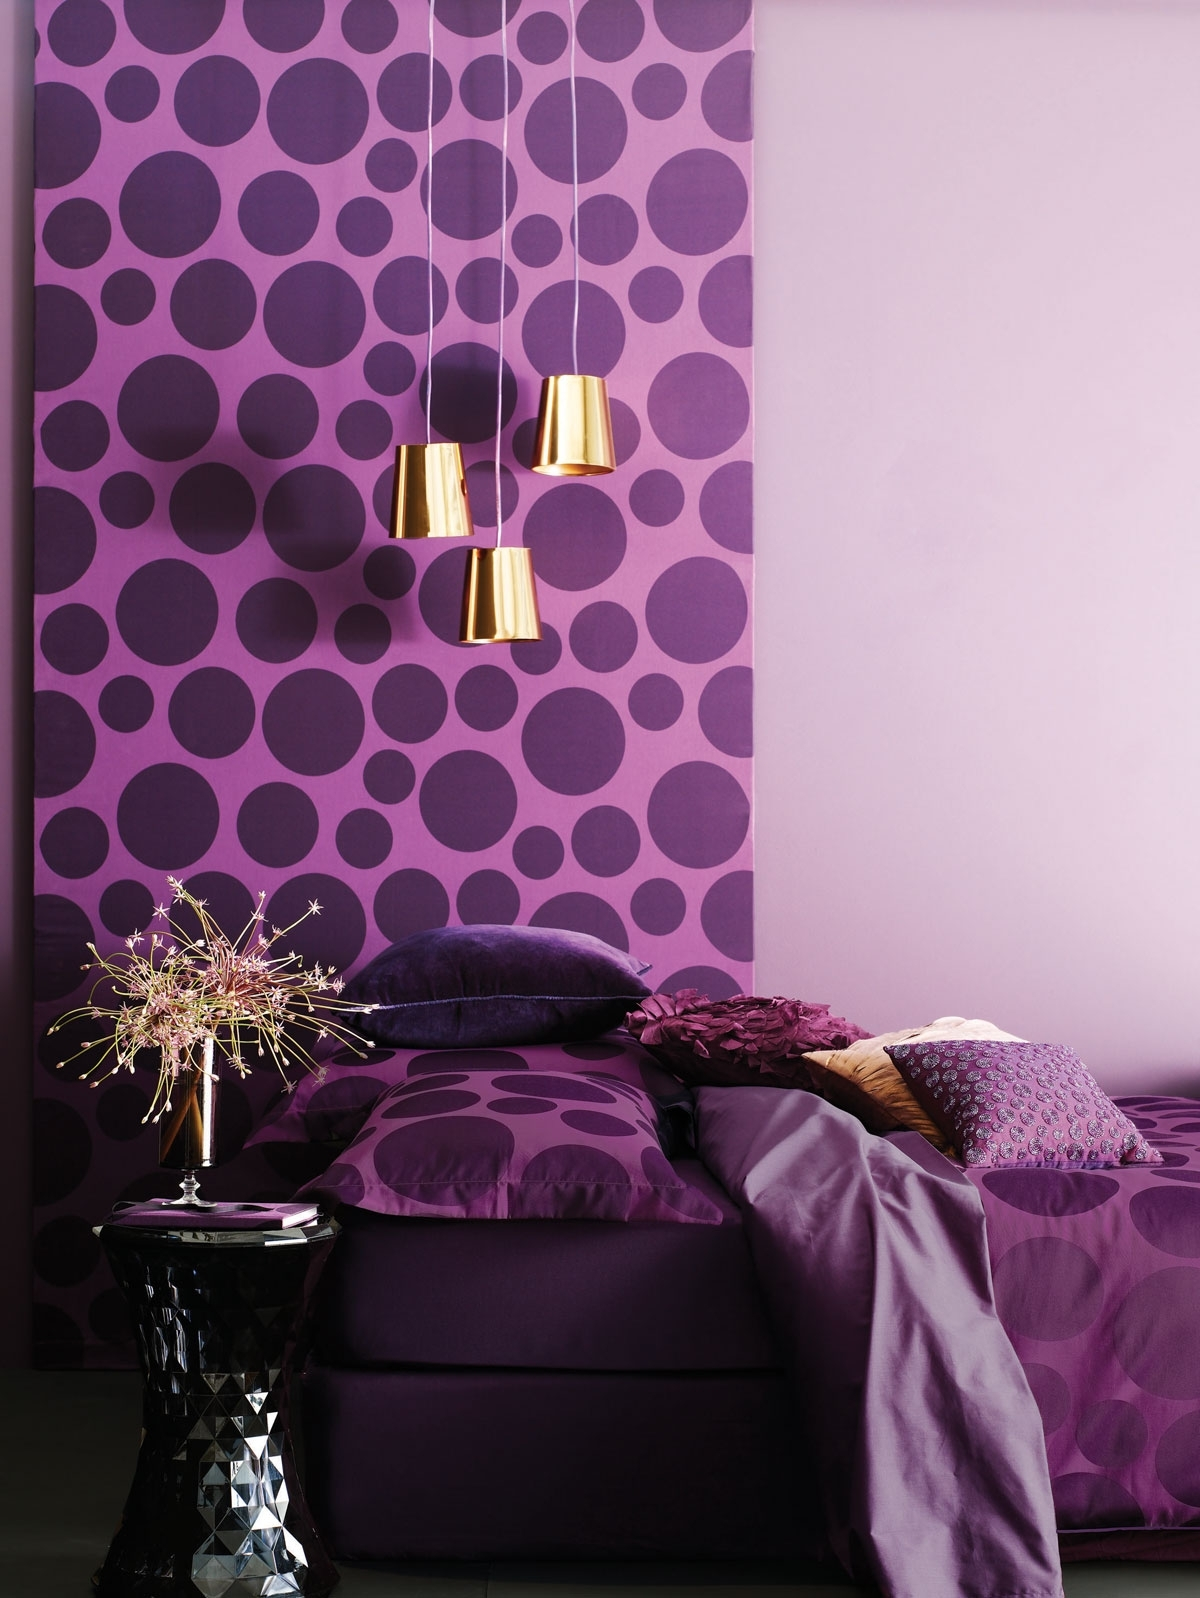 Latest Room Design With Wallpaper, Purple Wall Decor For Bedrooms Purple Within Purple Wall Art For Bedroom (View 6 of 15)